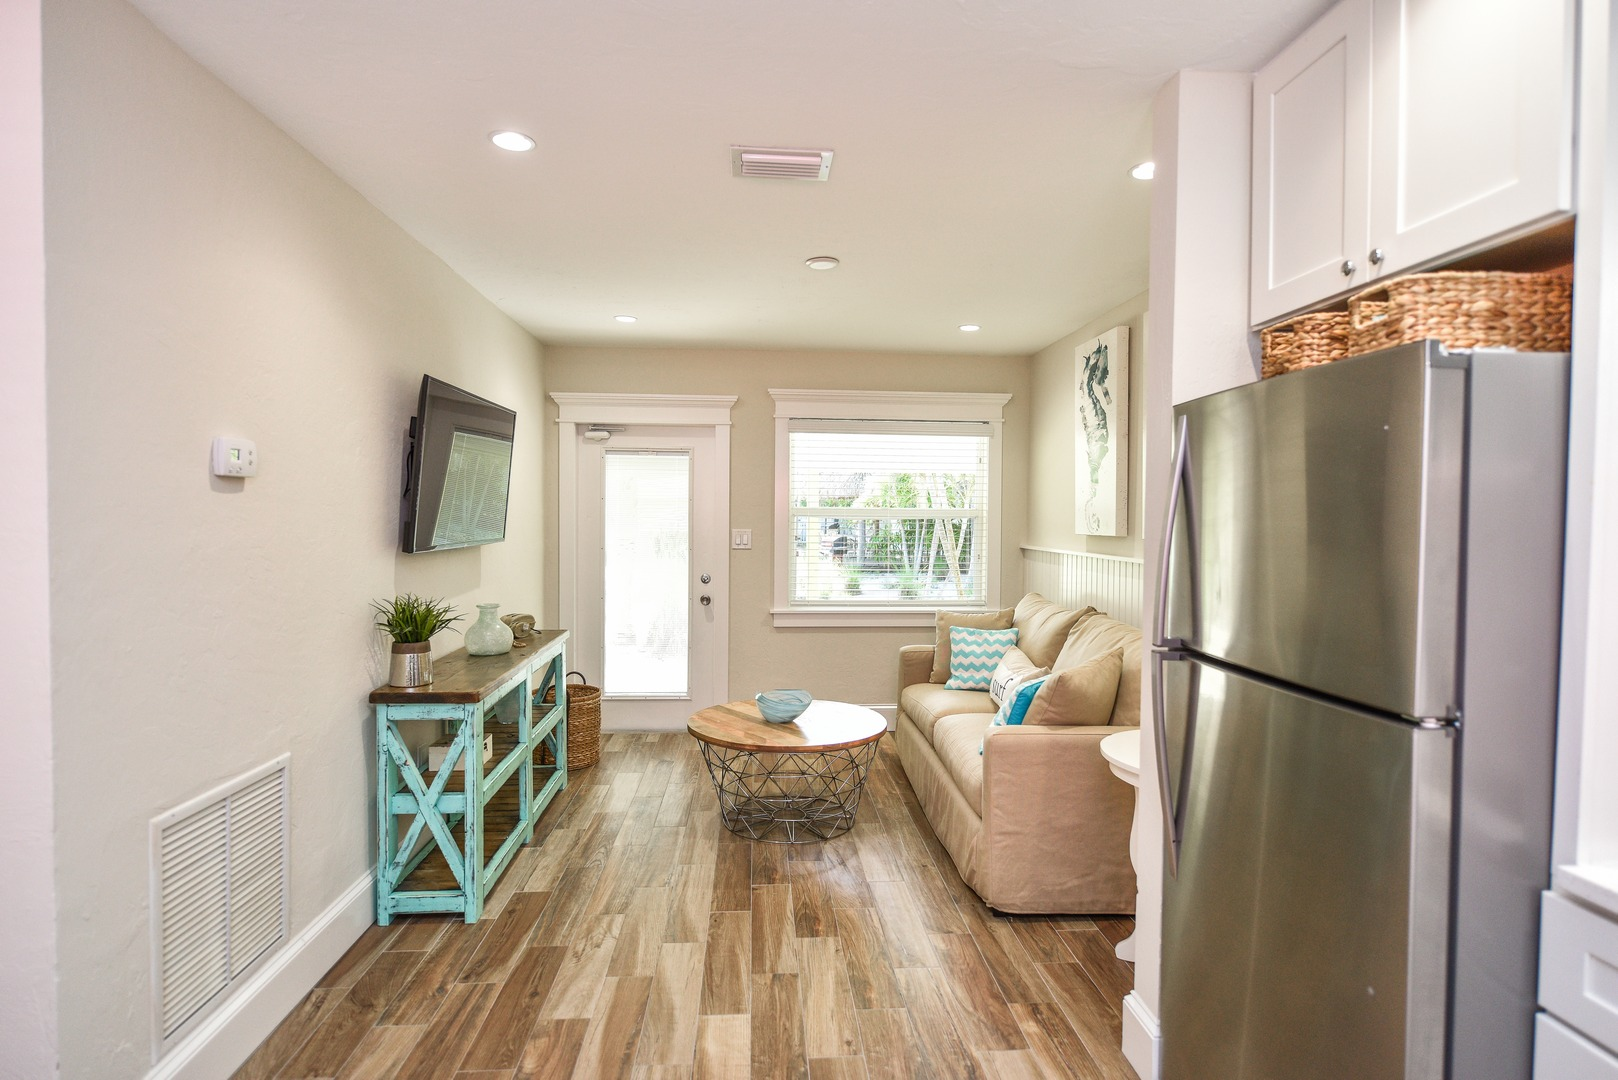 Open Floor Plan - Cook while you Watch TV